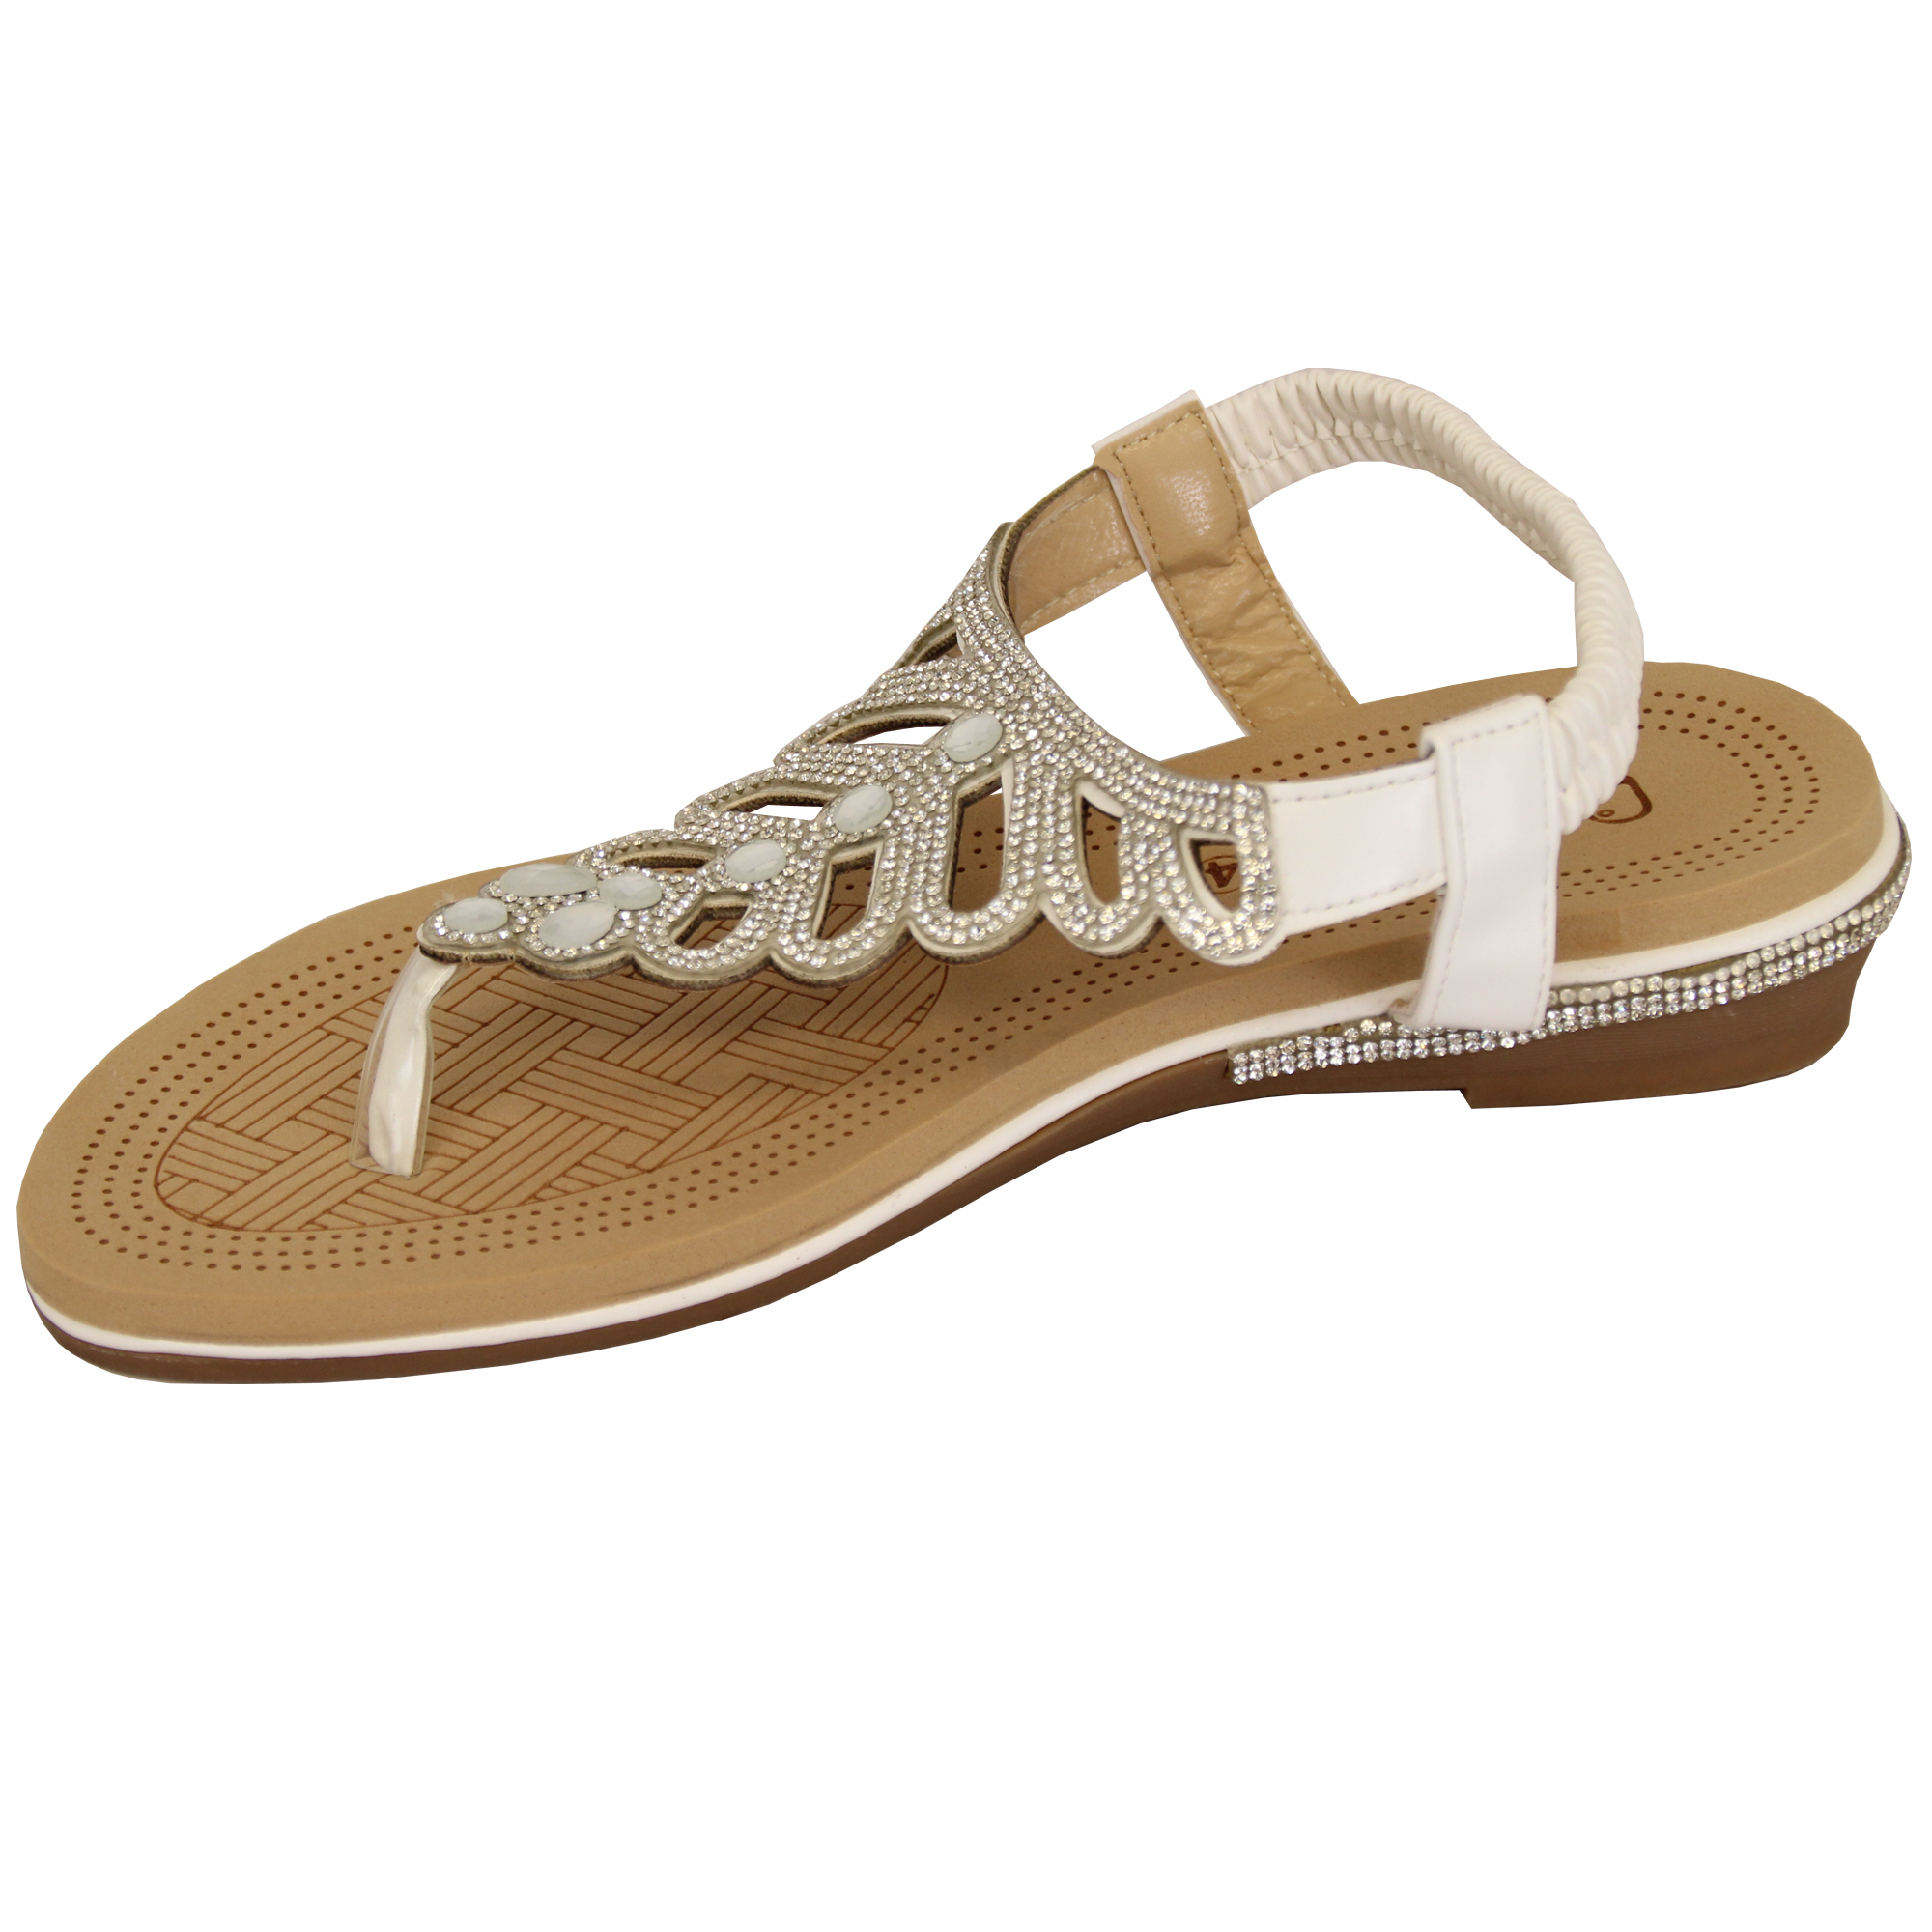 Ladies-Sandals-Kelsi-Womens-Diamante-Slip-On-Toe-Post-Shoes-Casual-Fashion-New thumbnail 36